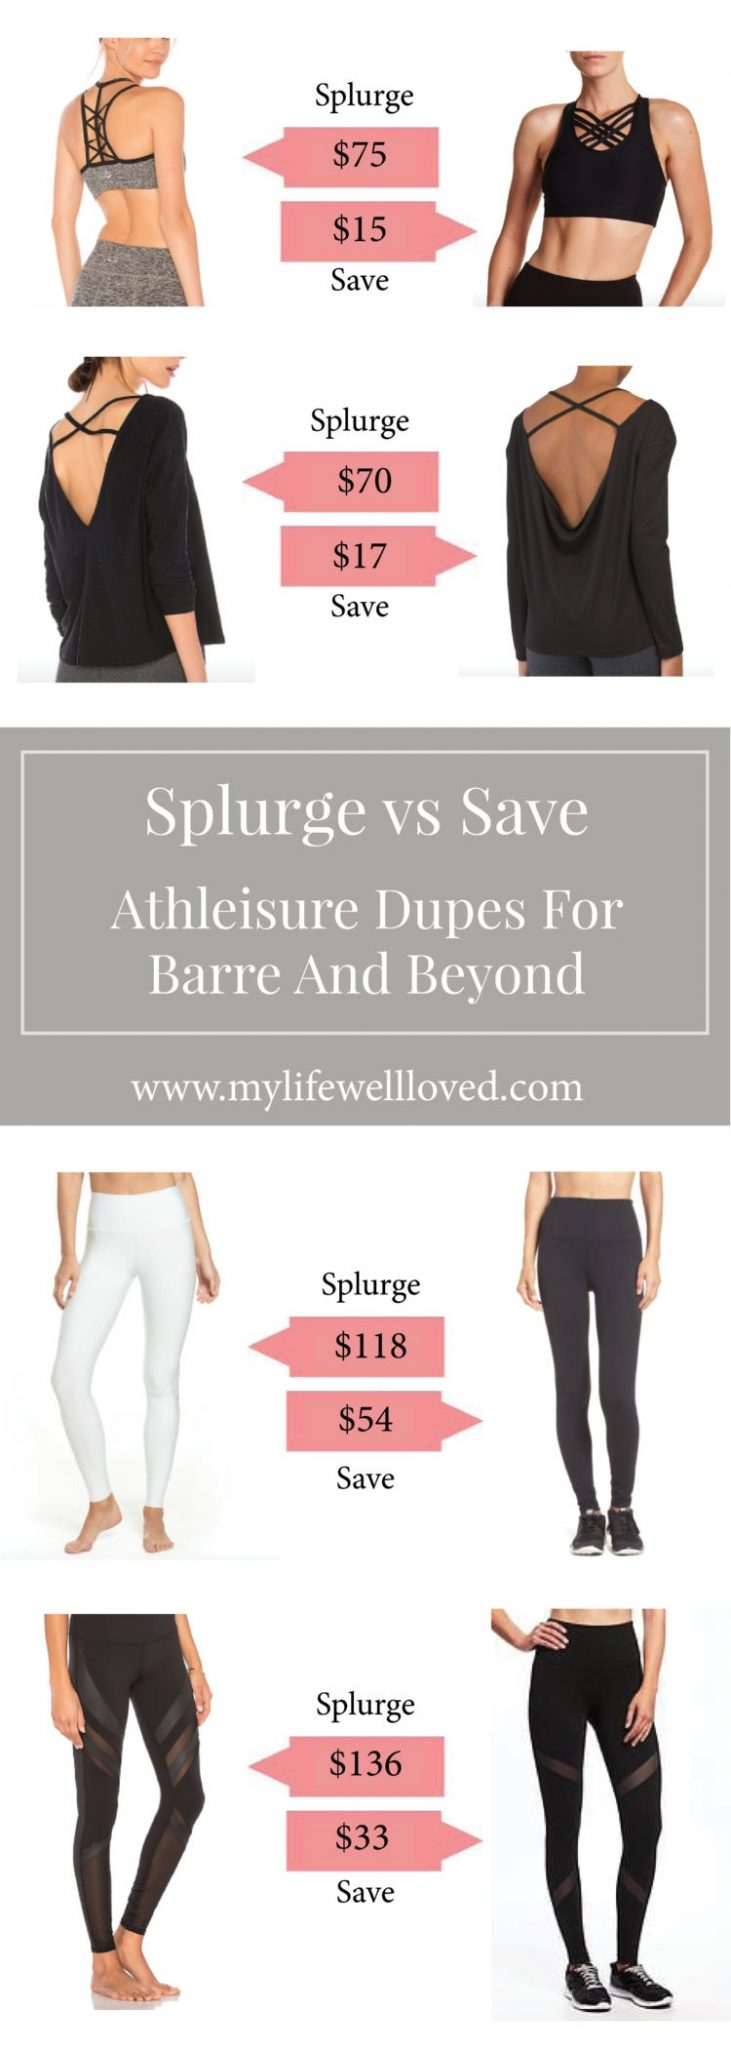 athelisure dupes for barre and beyond by alabama blogger heather brown // splurge // save // workout // clothes // Affordable Pure Barre Clothing That Won't Break The Bank by popular Alabama fitness blogger My Life Well Loved